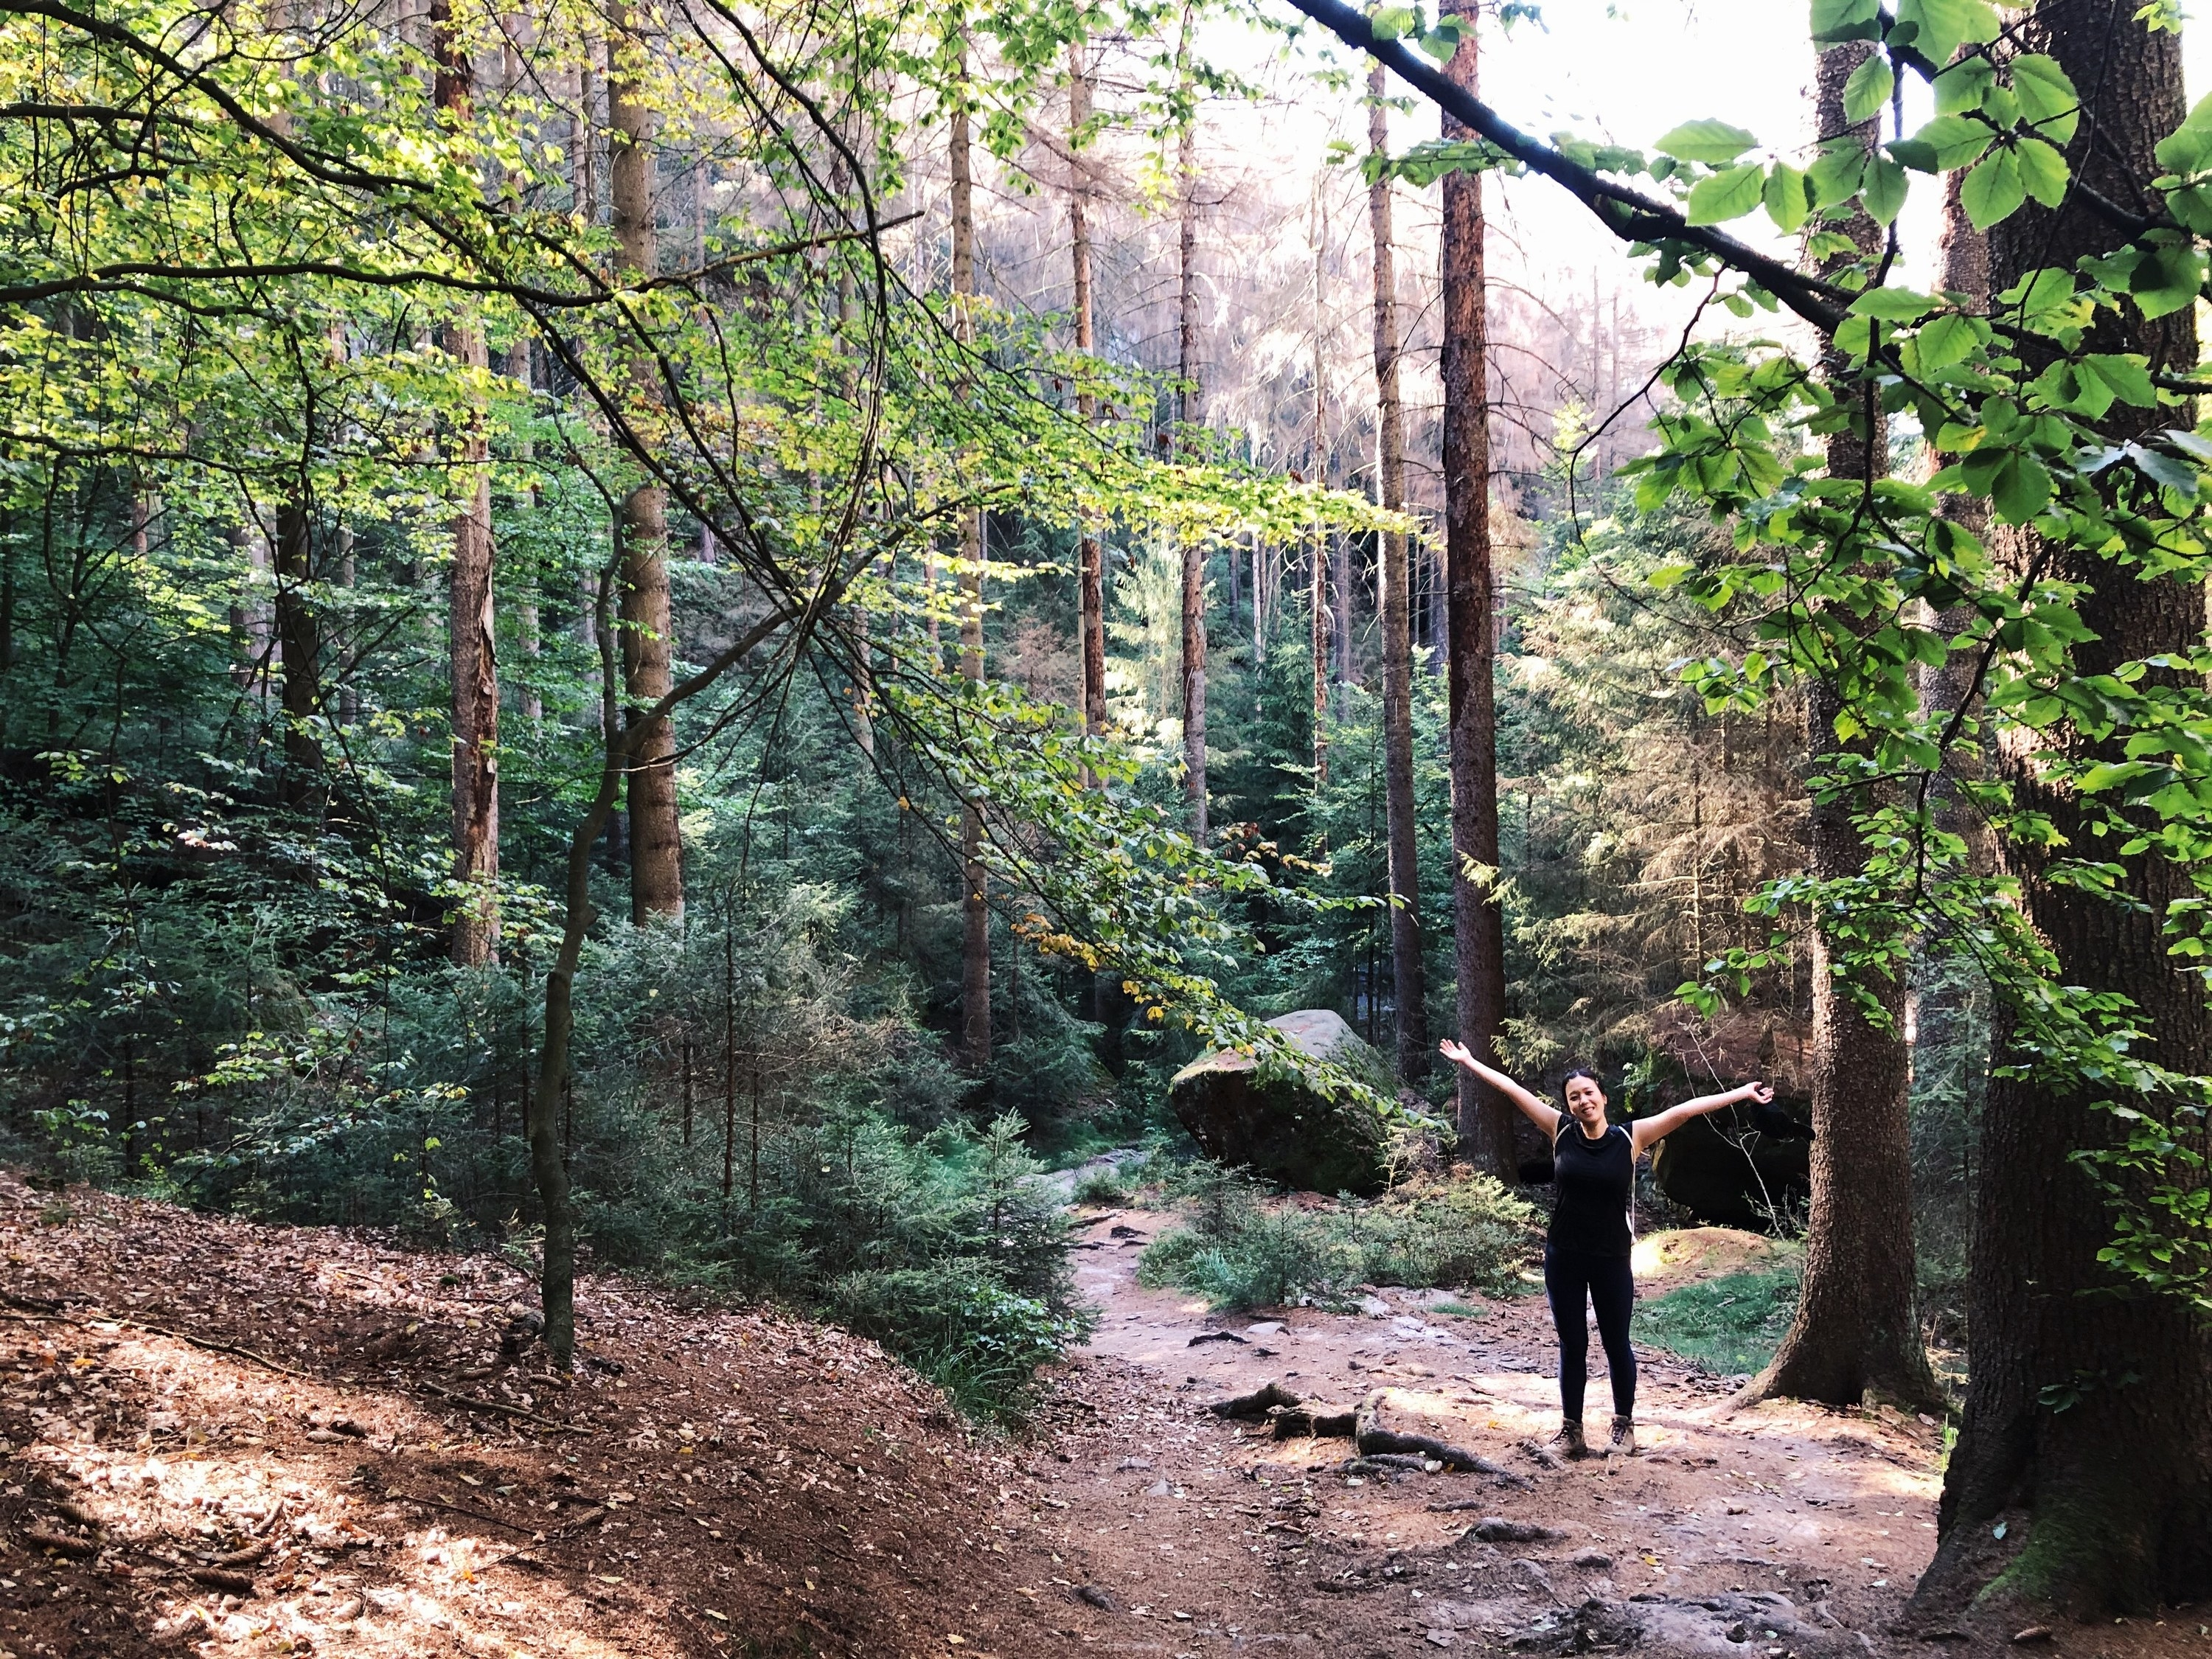 The writer holding her hands out in the middle of a verdant Berlin forest